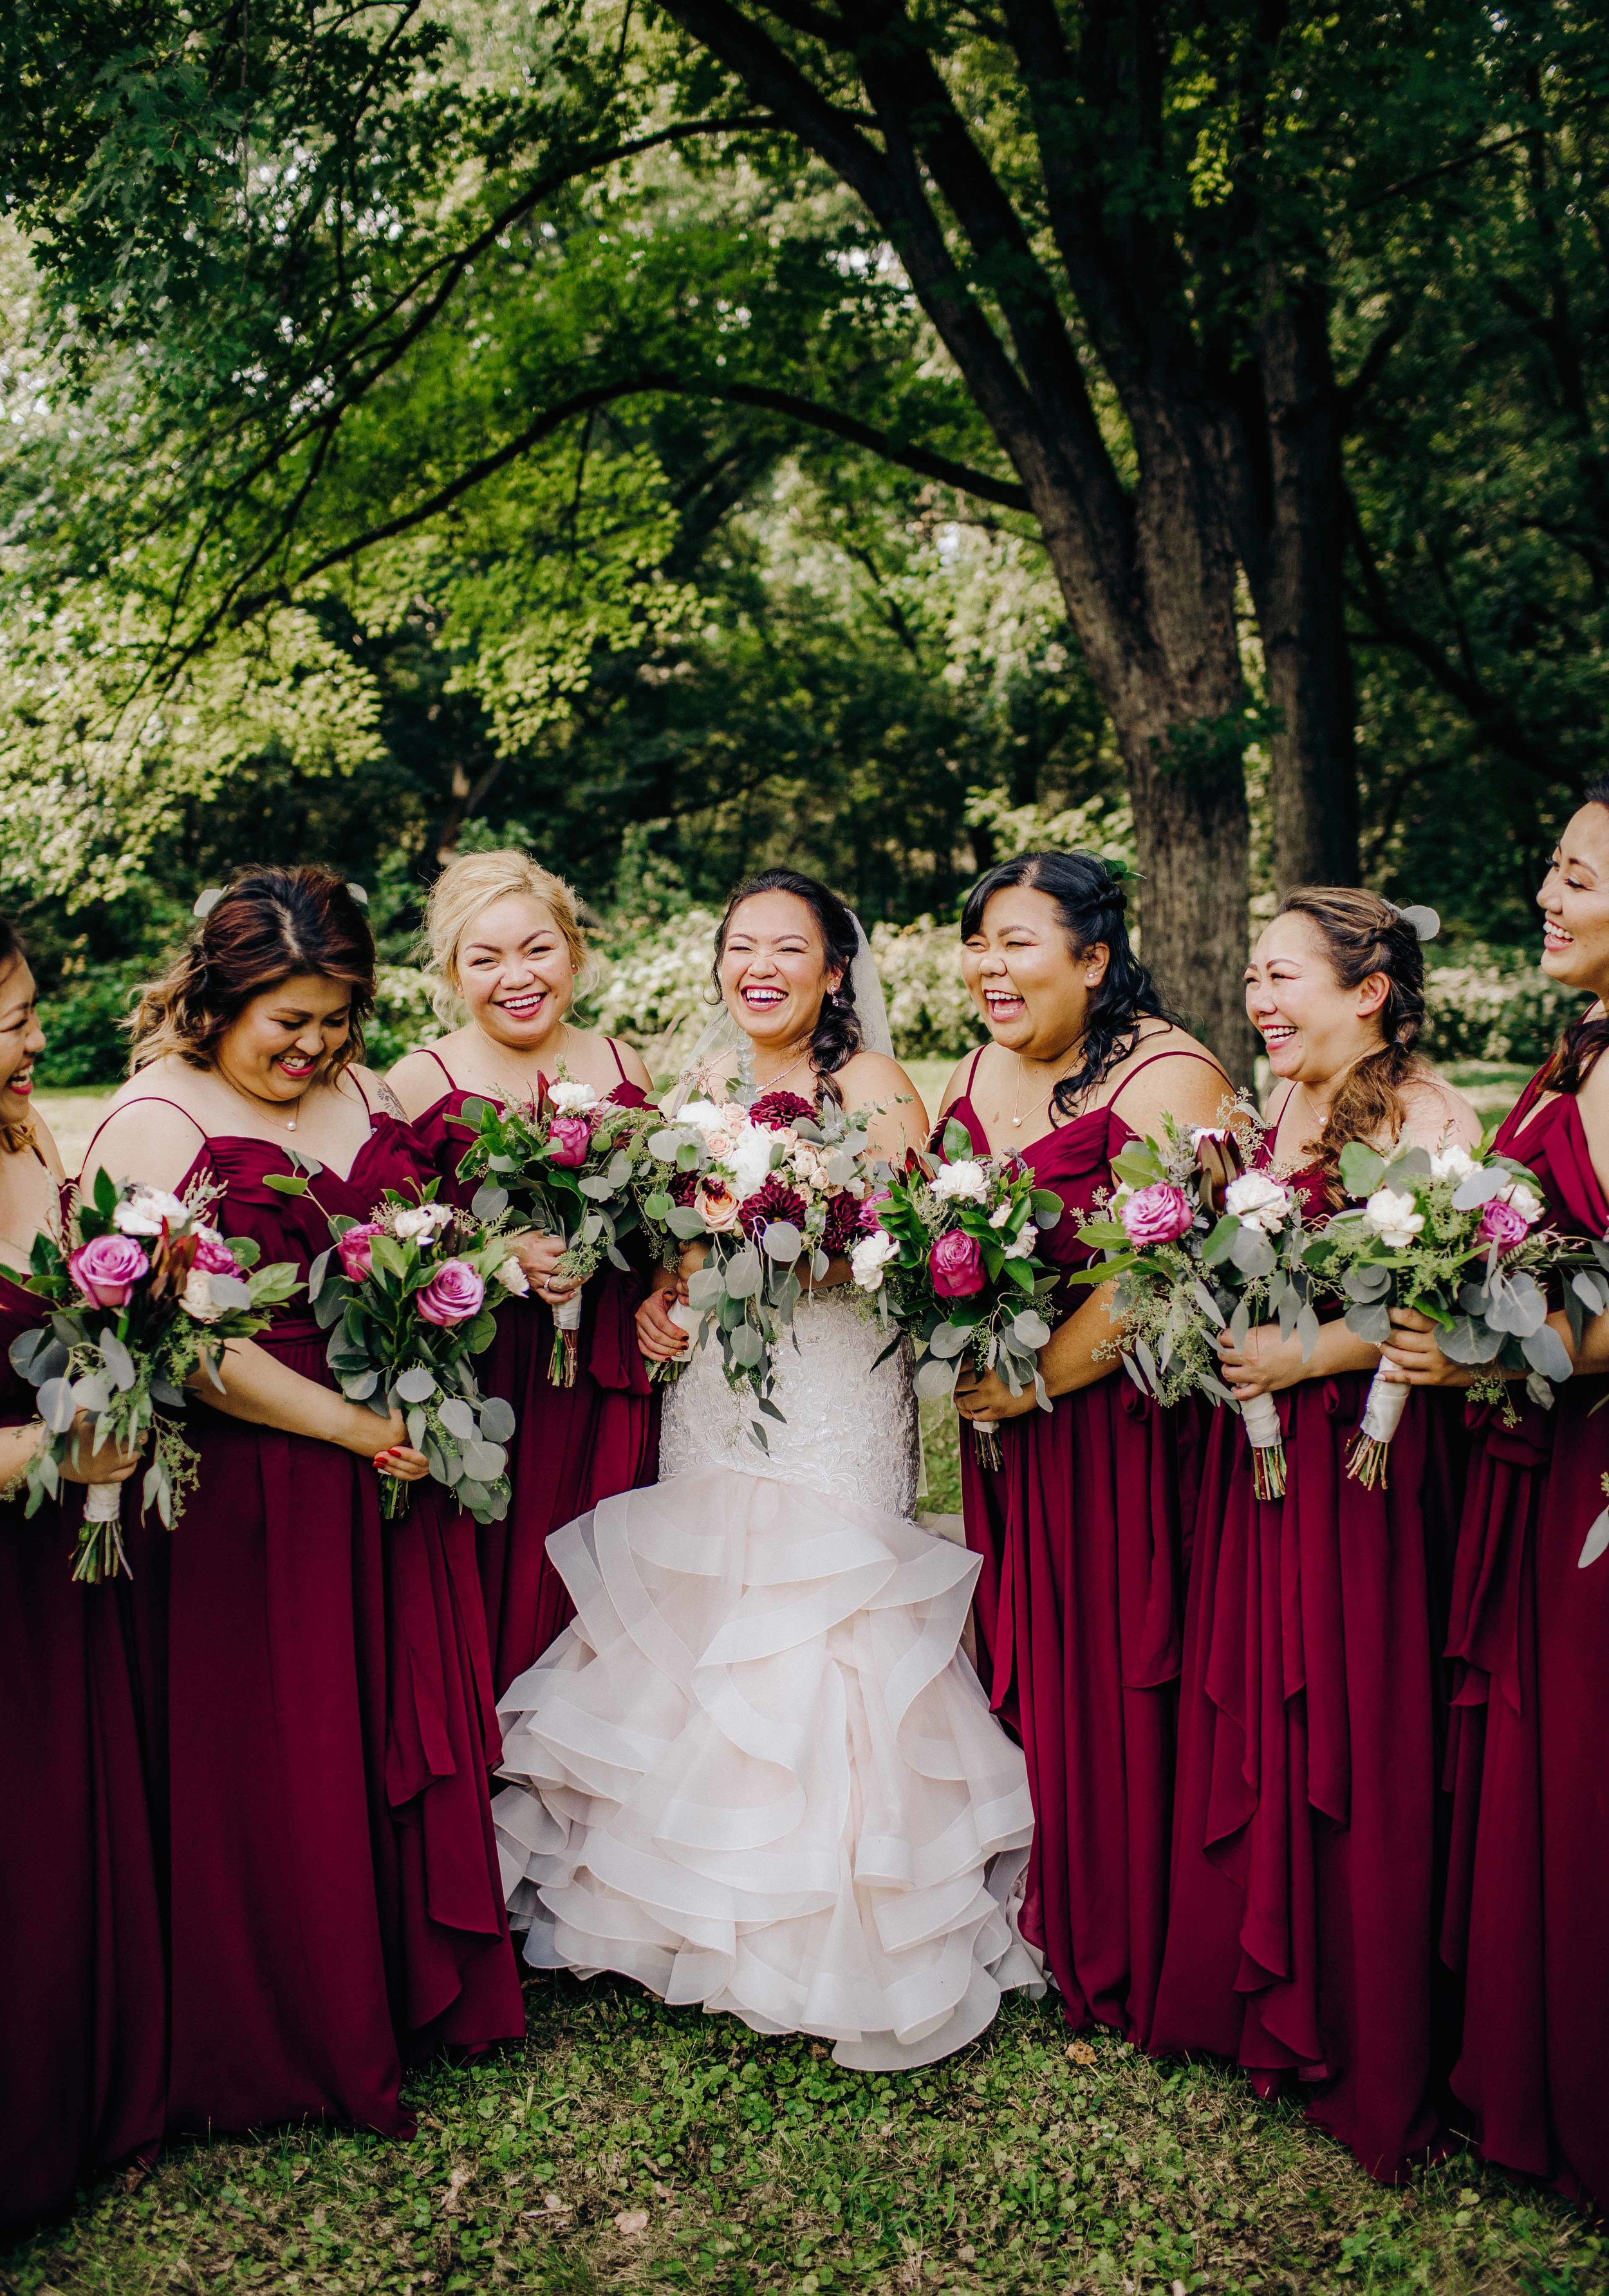 Becky + Kong, Part II, Bride, Groom, and Party-119.jpg